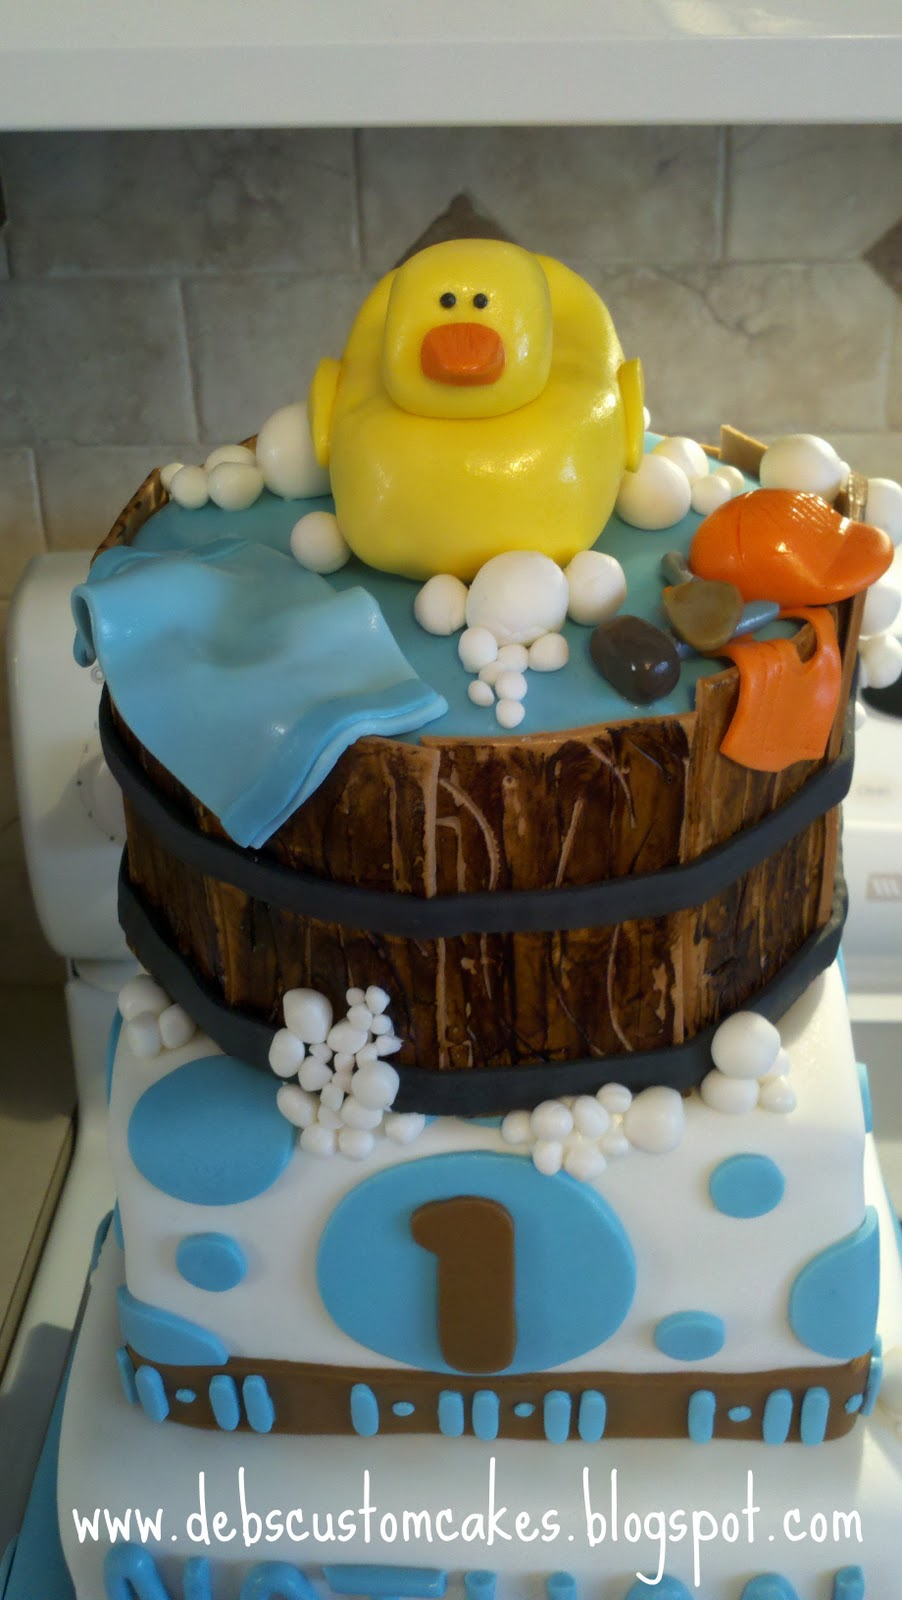 Deb S Custom Cakes Rubber Duck 1st Birthday Cake